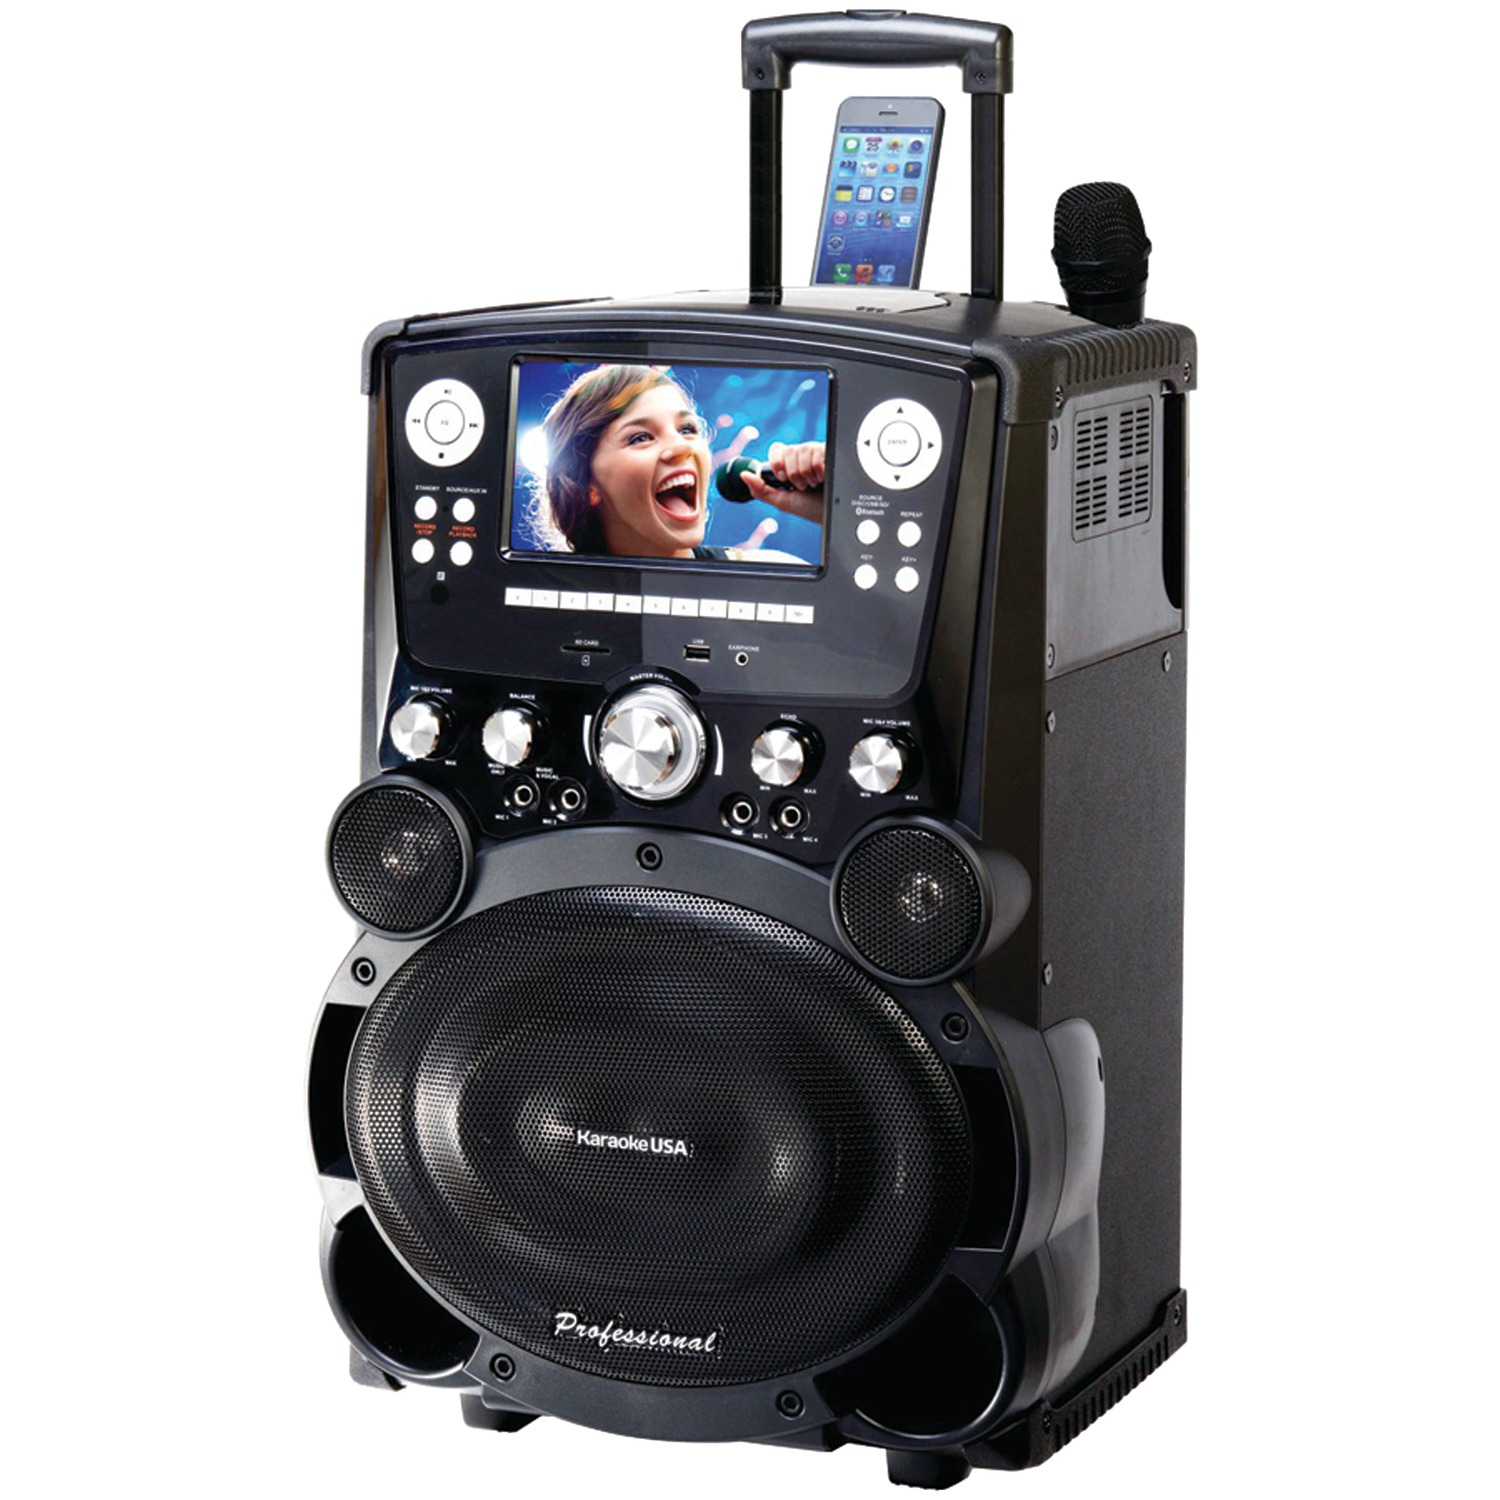 "Karaoke USA GP978 Complete Professional Bluetooth Karaoke System- 100 Watt Power Output includes 2 Microphones, Remote Control, 7"" Color Screen, Record Function with wheels. Plays DVD/CDG/MP3G/USB/SD"